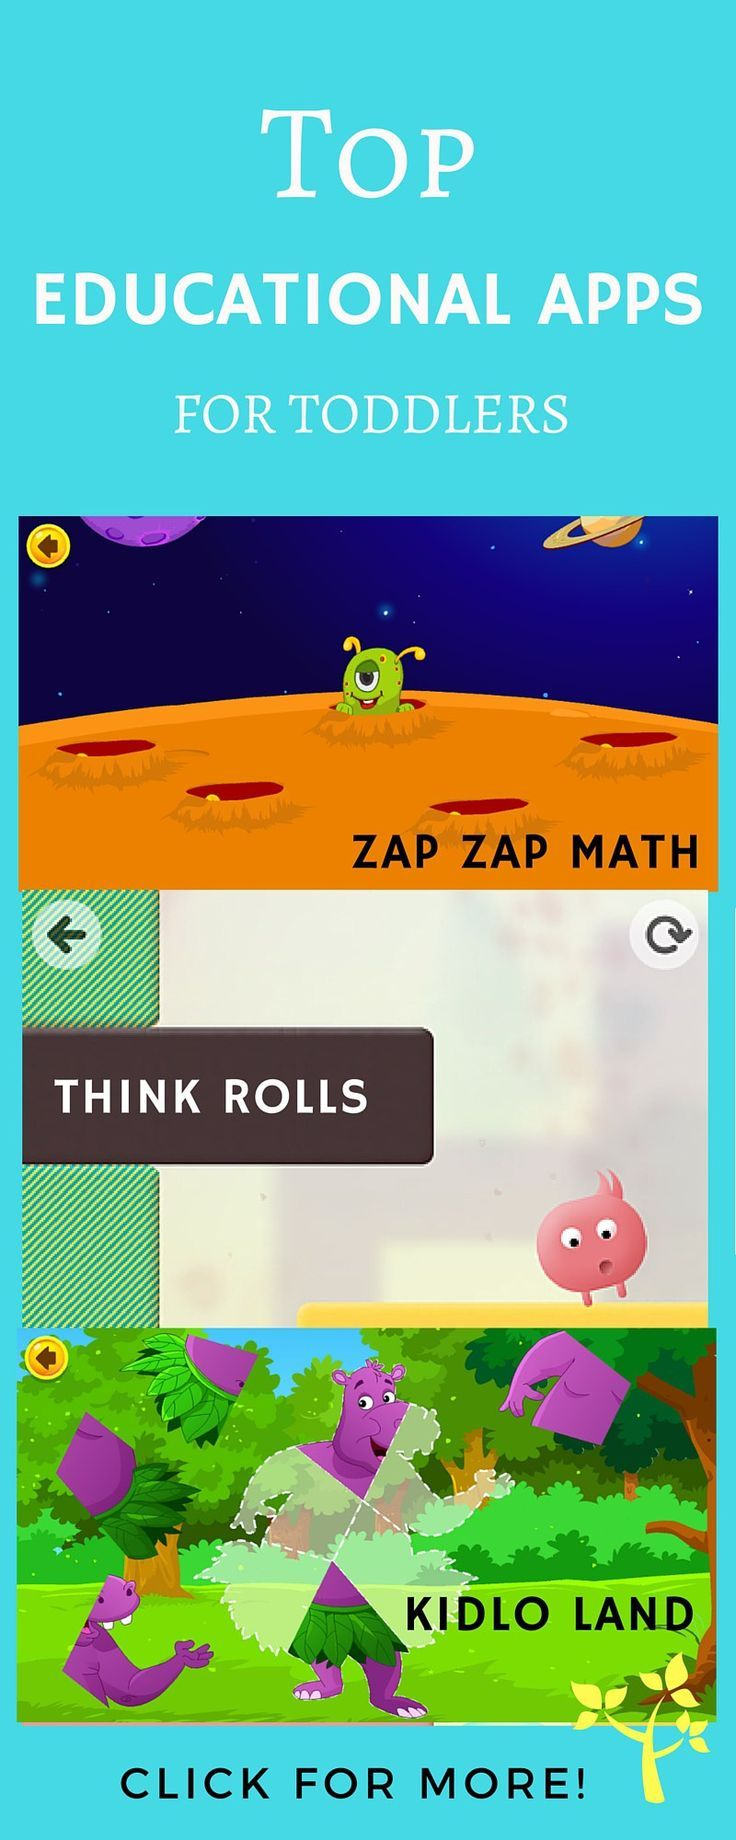 Top educational apps for toddlers, preschoolers and school-aged kids. Each of these apps support fine-motor and language development and mathematical reasoning.